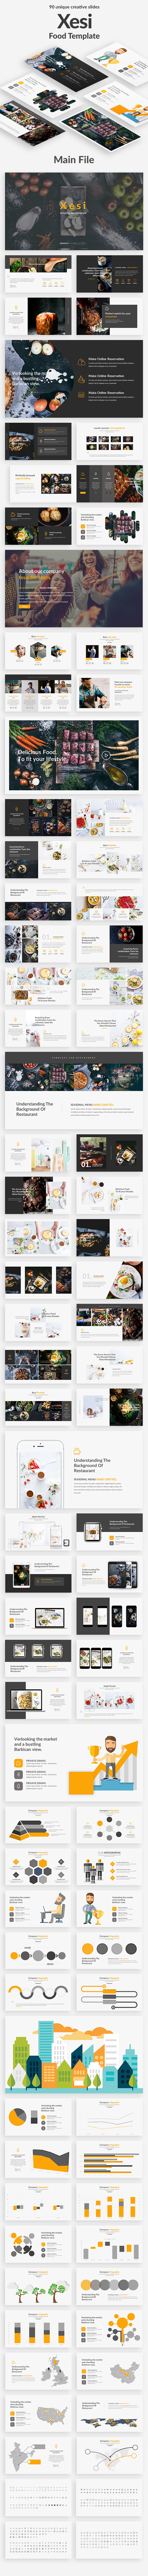 Xesi Food Powerpoint Template - Creative PowerPoint Templates